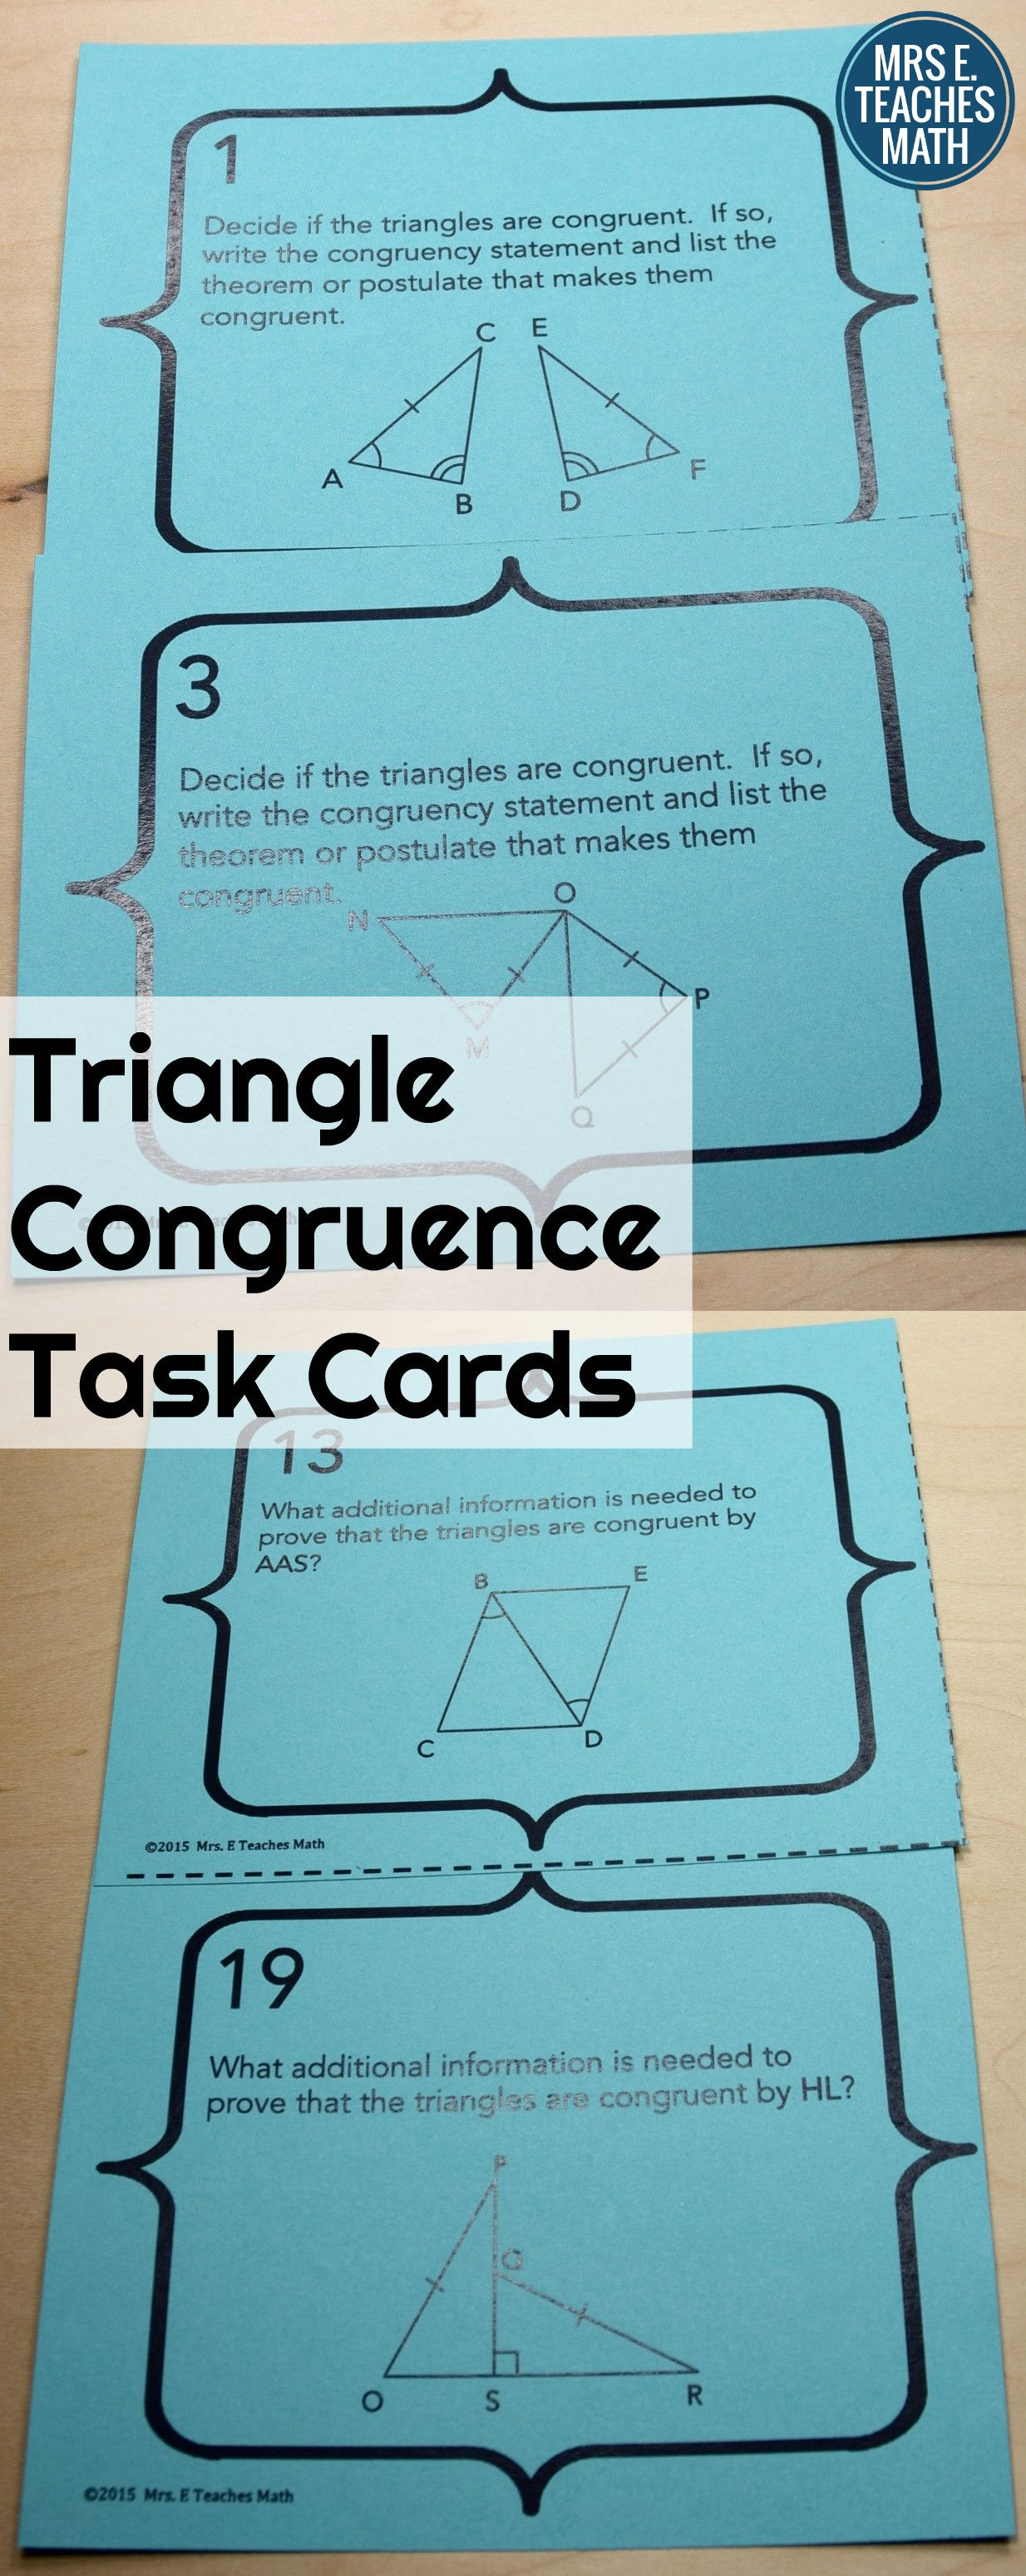 Congruent Triangles Task Cards | Resources for High School Teachers ...